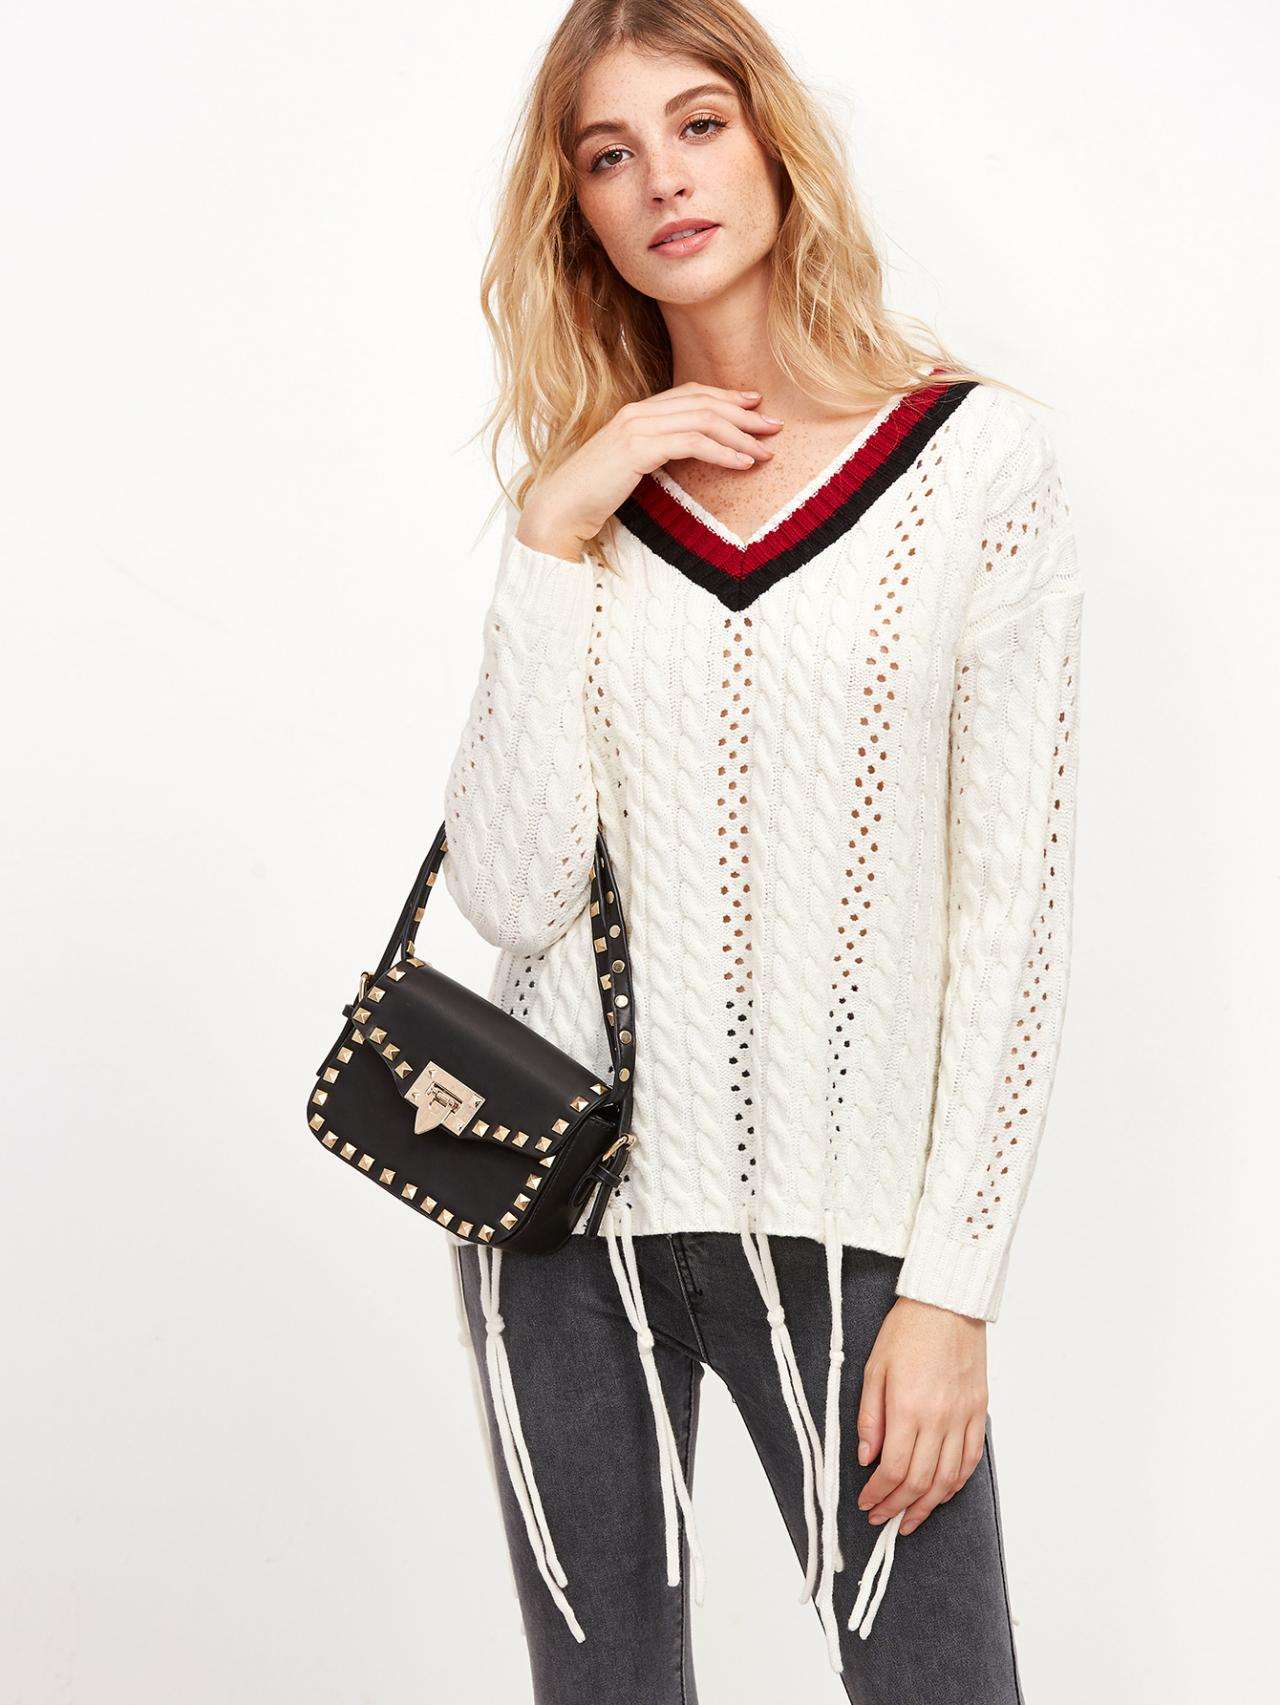 plunge-v-open-knit-sweater-featuring-stripes-neckline-and-knotted-string-hem